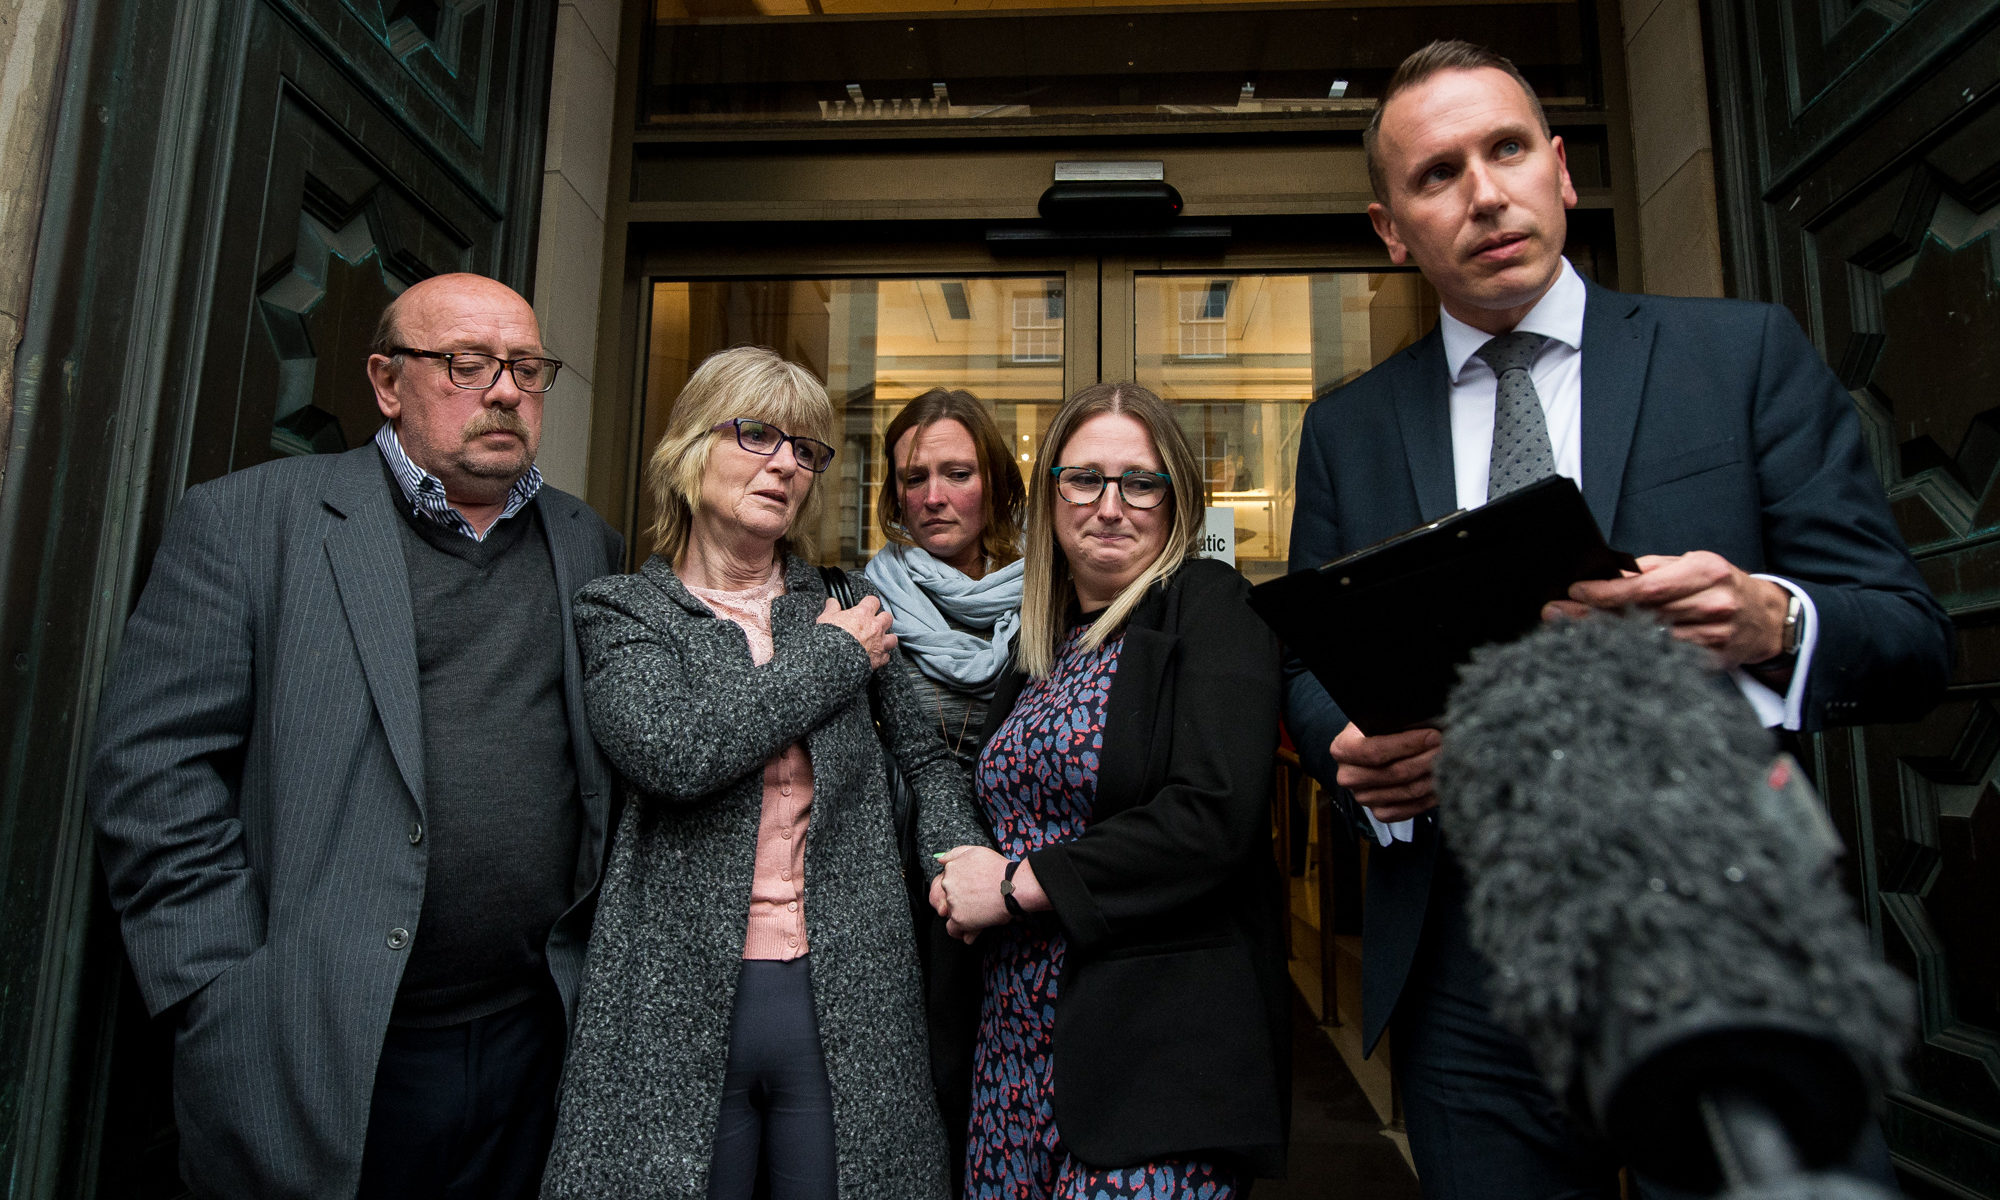 Bill and Pamela Donaldson with their daughters Nicola Yarnell and Lori Robertson, after the verdict, as DCI Andy Patrick reads out a statement on their behalf.